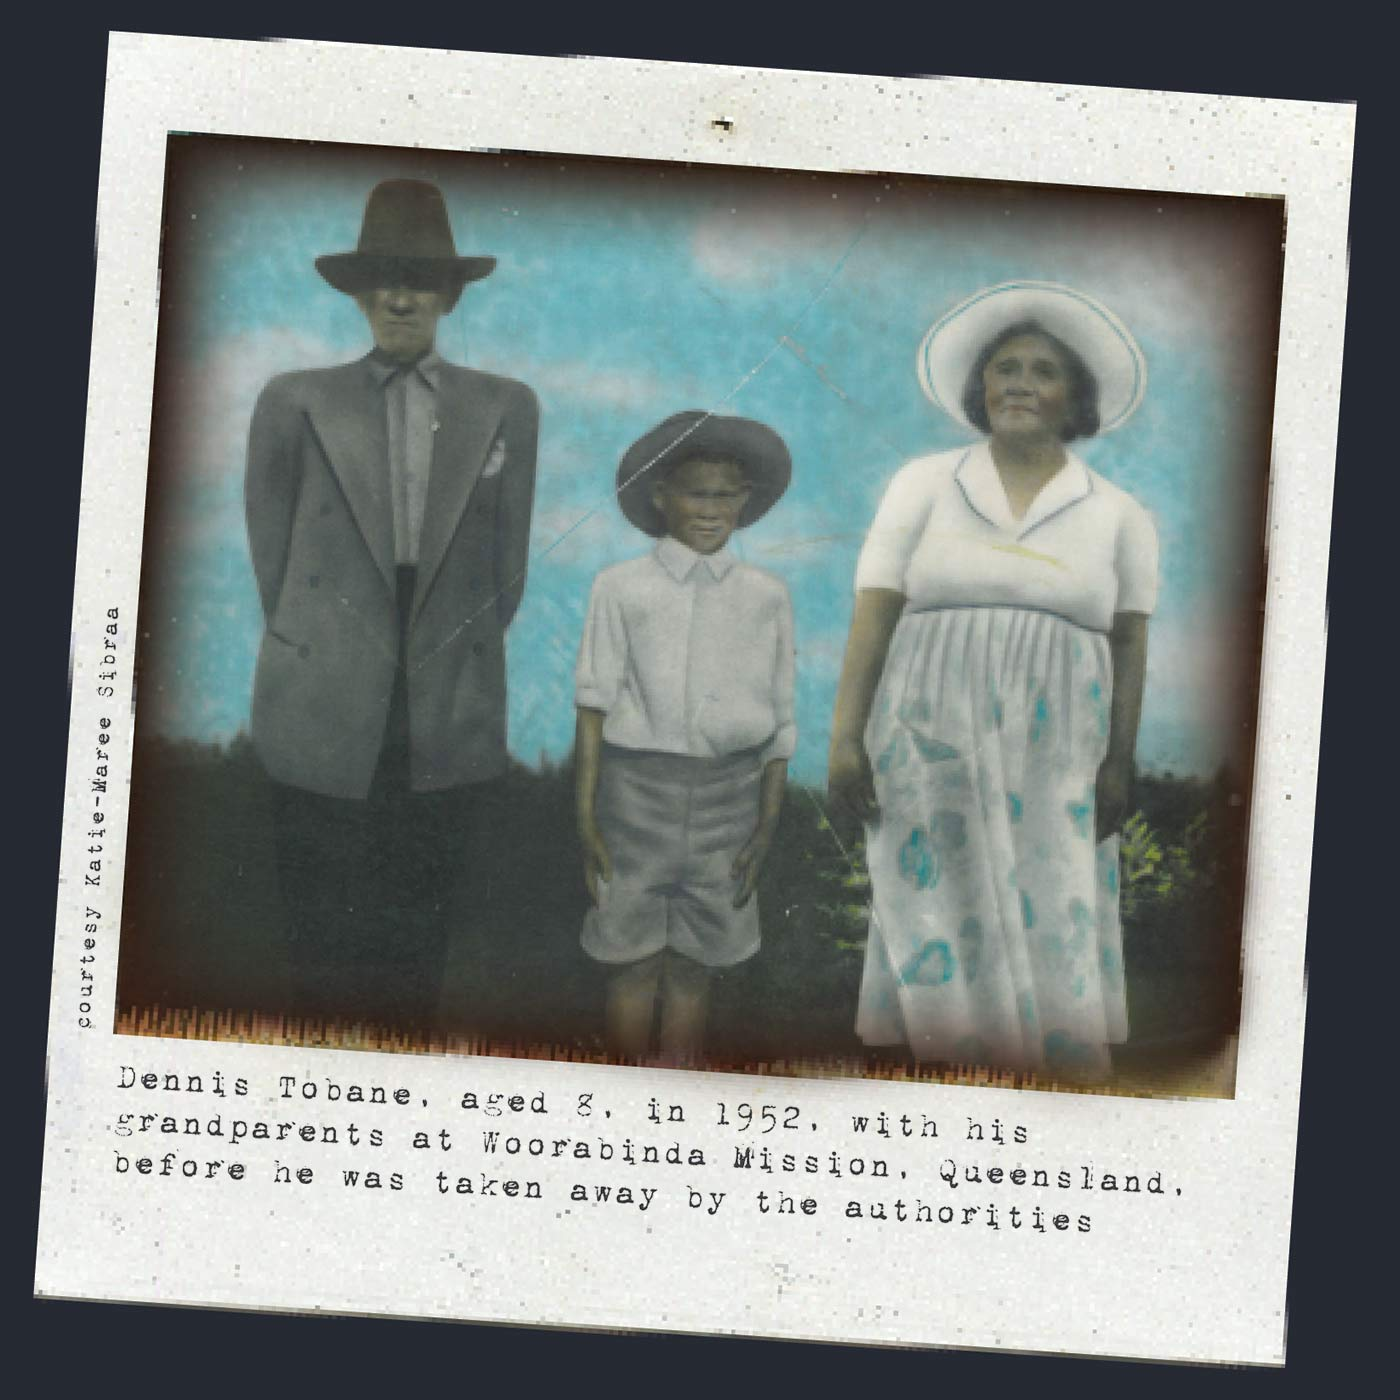 A black and white Polaroid photograph portraying three people in a standing position. From left to right, there is an elderly man wearing dark trousers with a light grey blazer, shirt and hat; a young boy who has his hands firmly by his side - he is also wearing a hat - and an elderly woman wearing a light coloured skirt, white shirt and a white hat. Typewritten text underneath reads: 'Dennis Tobane, aged 8, in 1952, with his grandparents at Woorabinda Mission, Queensland, before he was taken away by the authorities'. In smaller text, on the left-hand side of the image, in a vertical direction, reads: 'Courtesy Katie-Maree Sibraa.' - click to view larger image